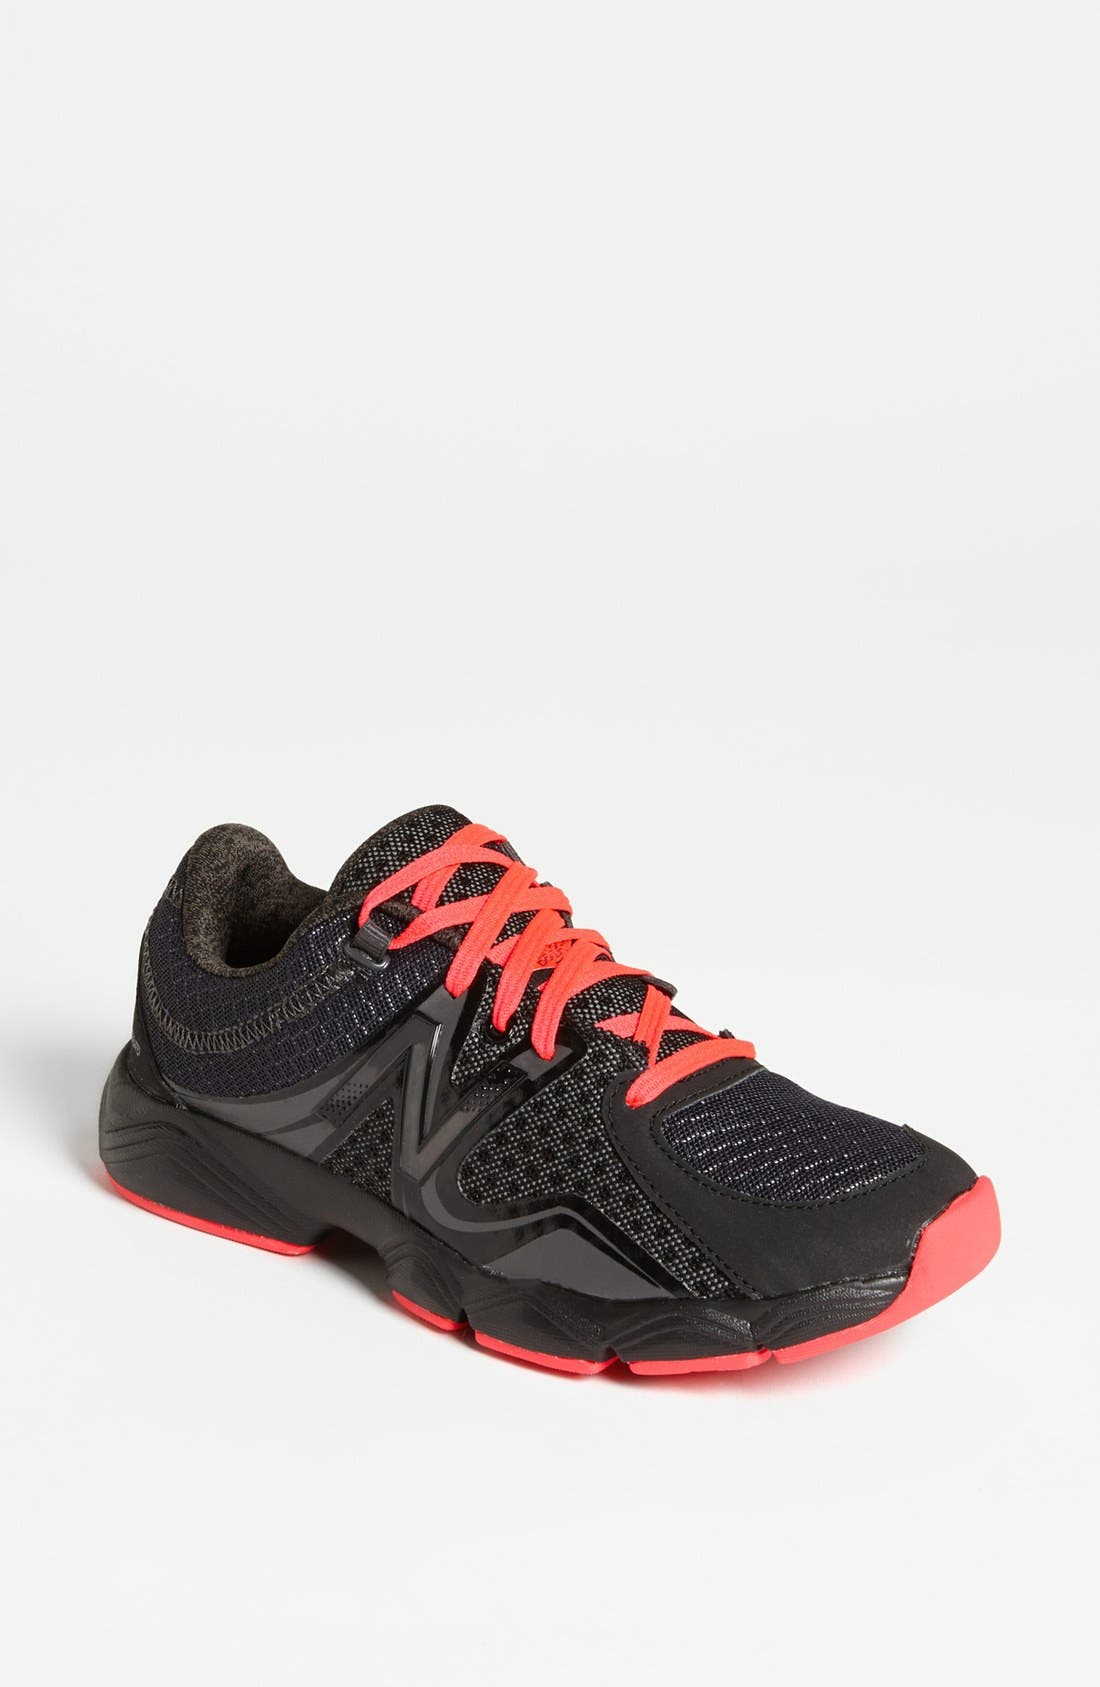 Alternate Image 1 Selected - New Balance '867' Training Shoe (Women)